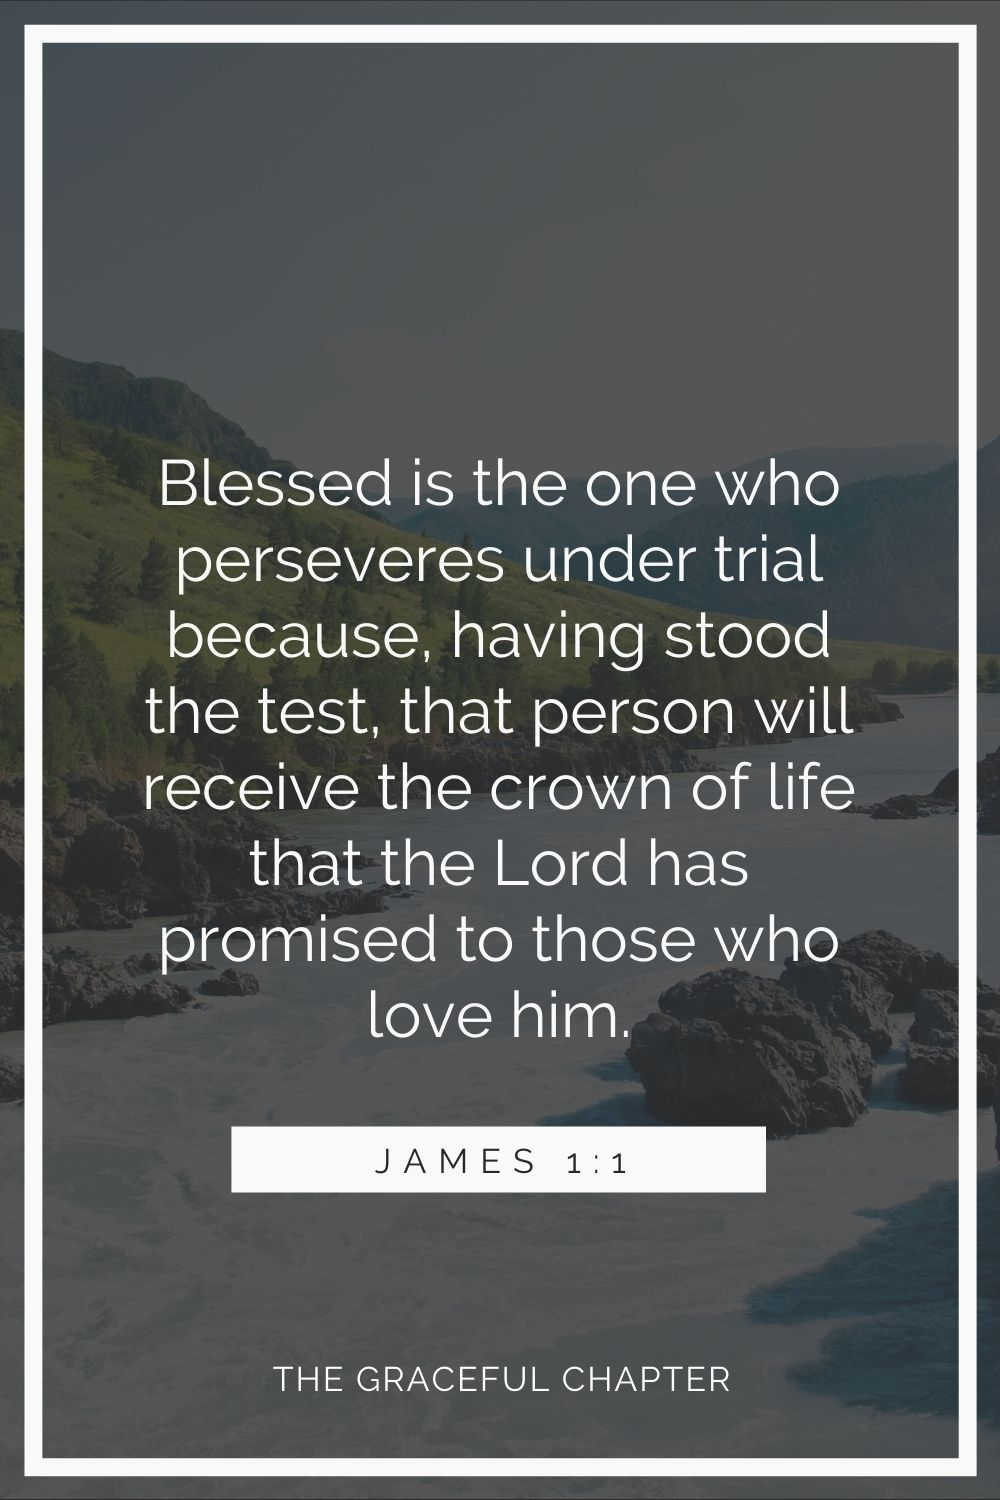 Blessed is the one who perseveres under trial because, having stood the test, that person will receive the crown of life that the Lord has promised to those who love him. James 1:1